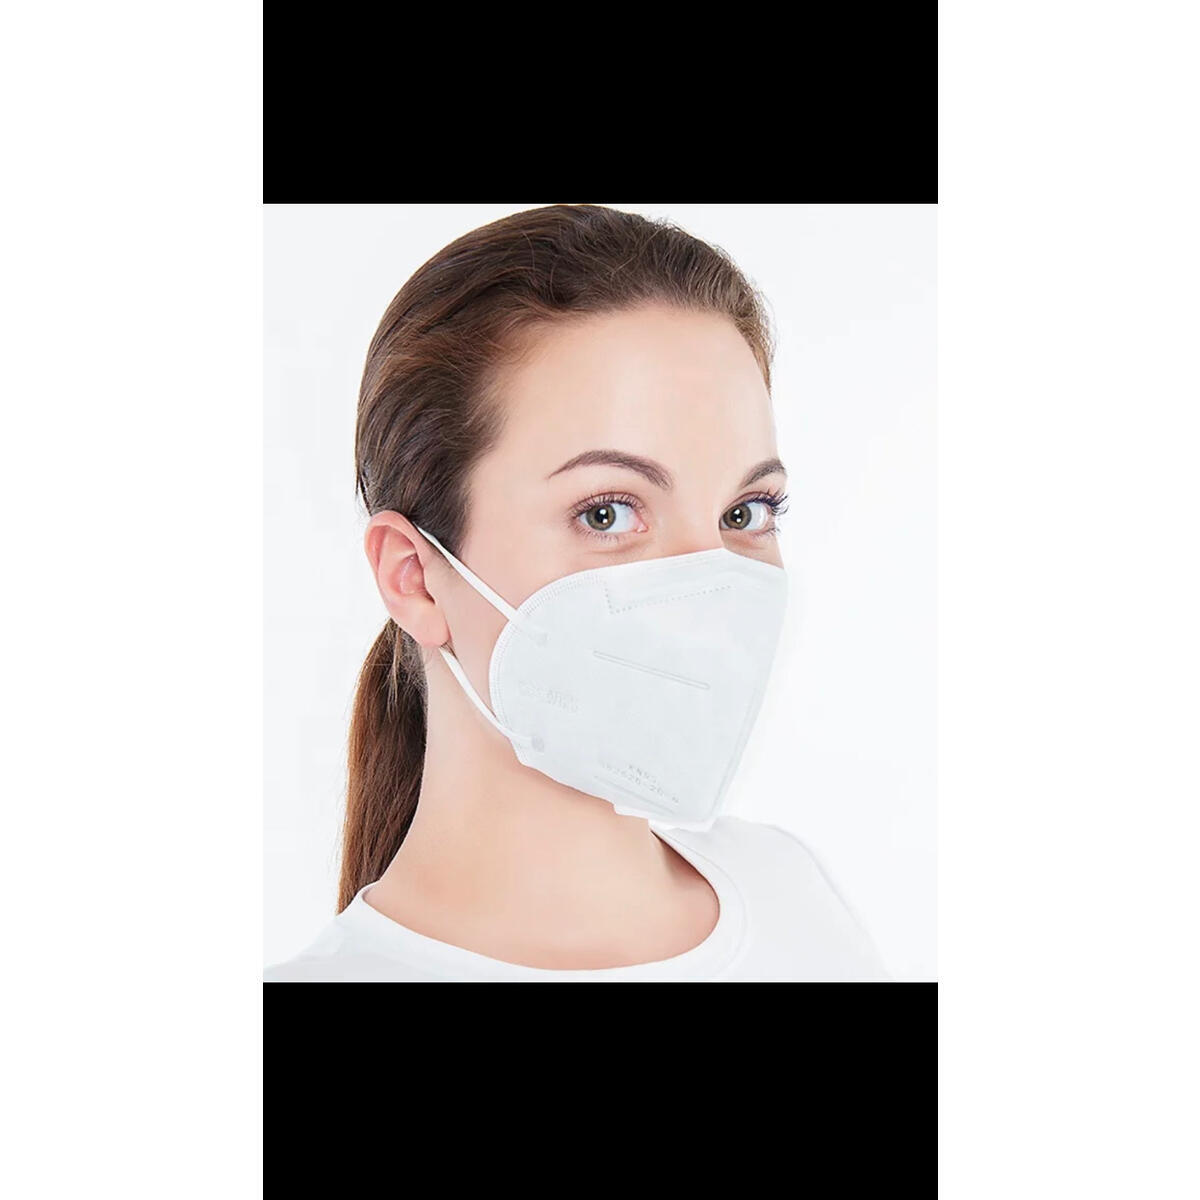 10 N95 Face Mask (Civilian Use Only)